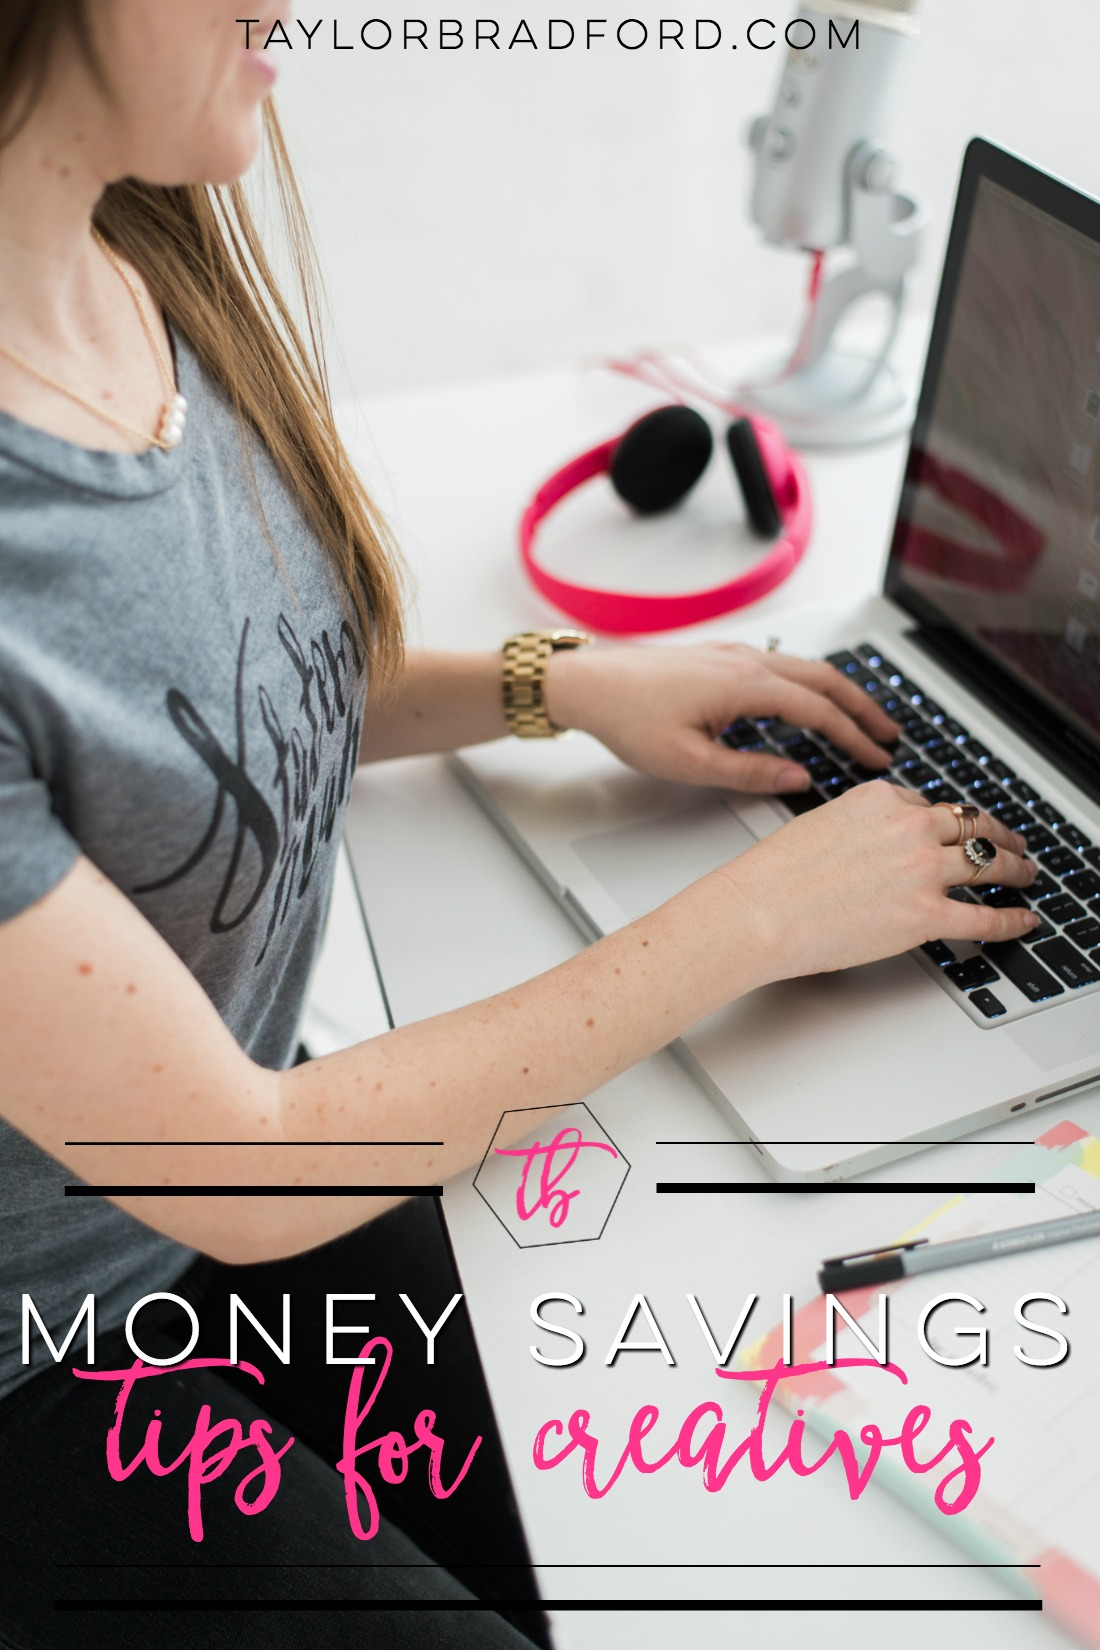 Financial planning for retirement can be a scary thought process for creatives! I'm sharing 4 Money Saving Tips for Creative Entrepreneurs as Part 1 in a 3 part series!! #OWNMYFUTURE (sponsored)